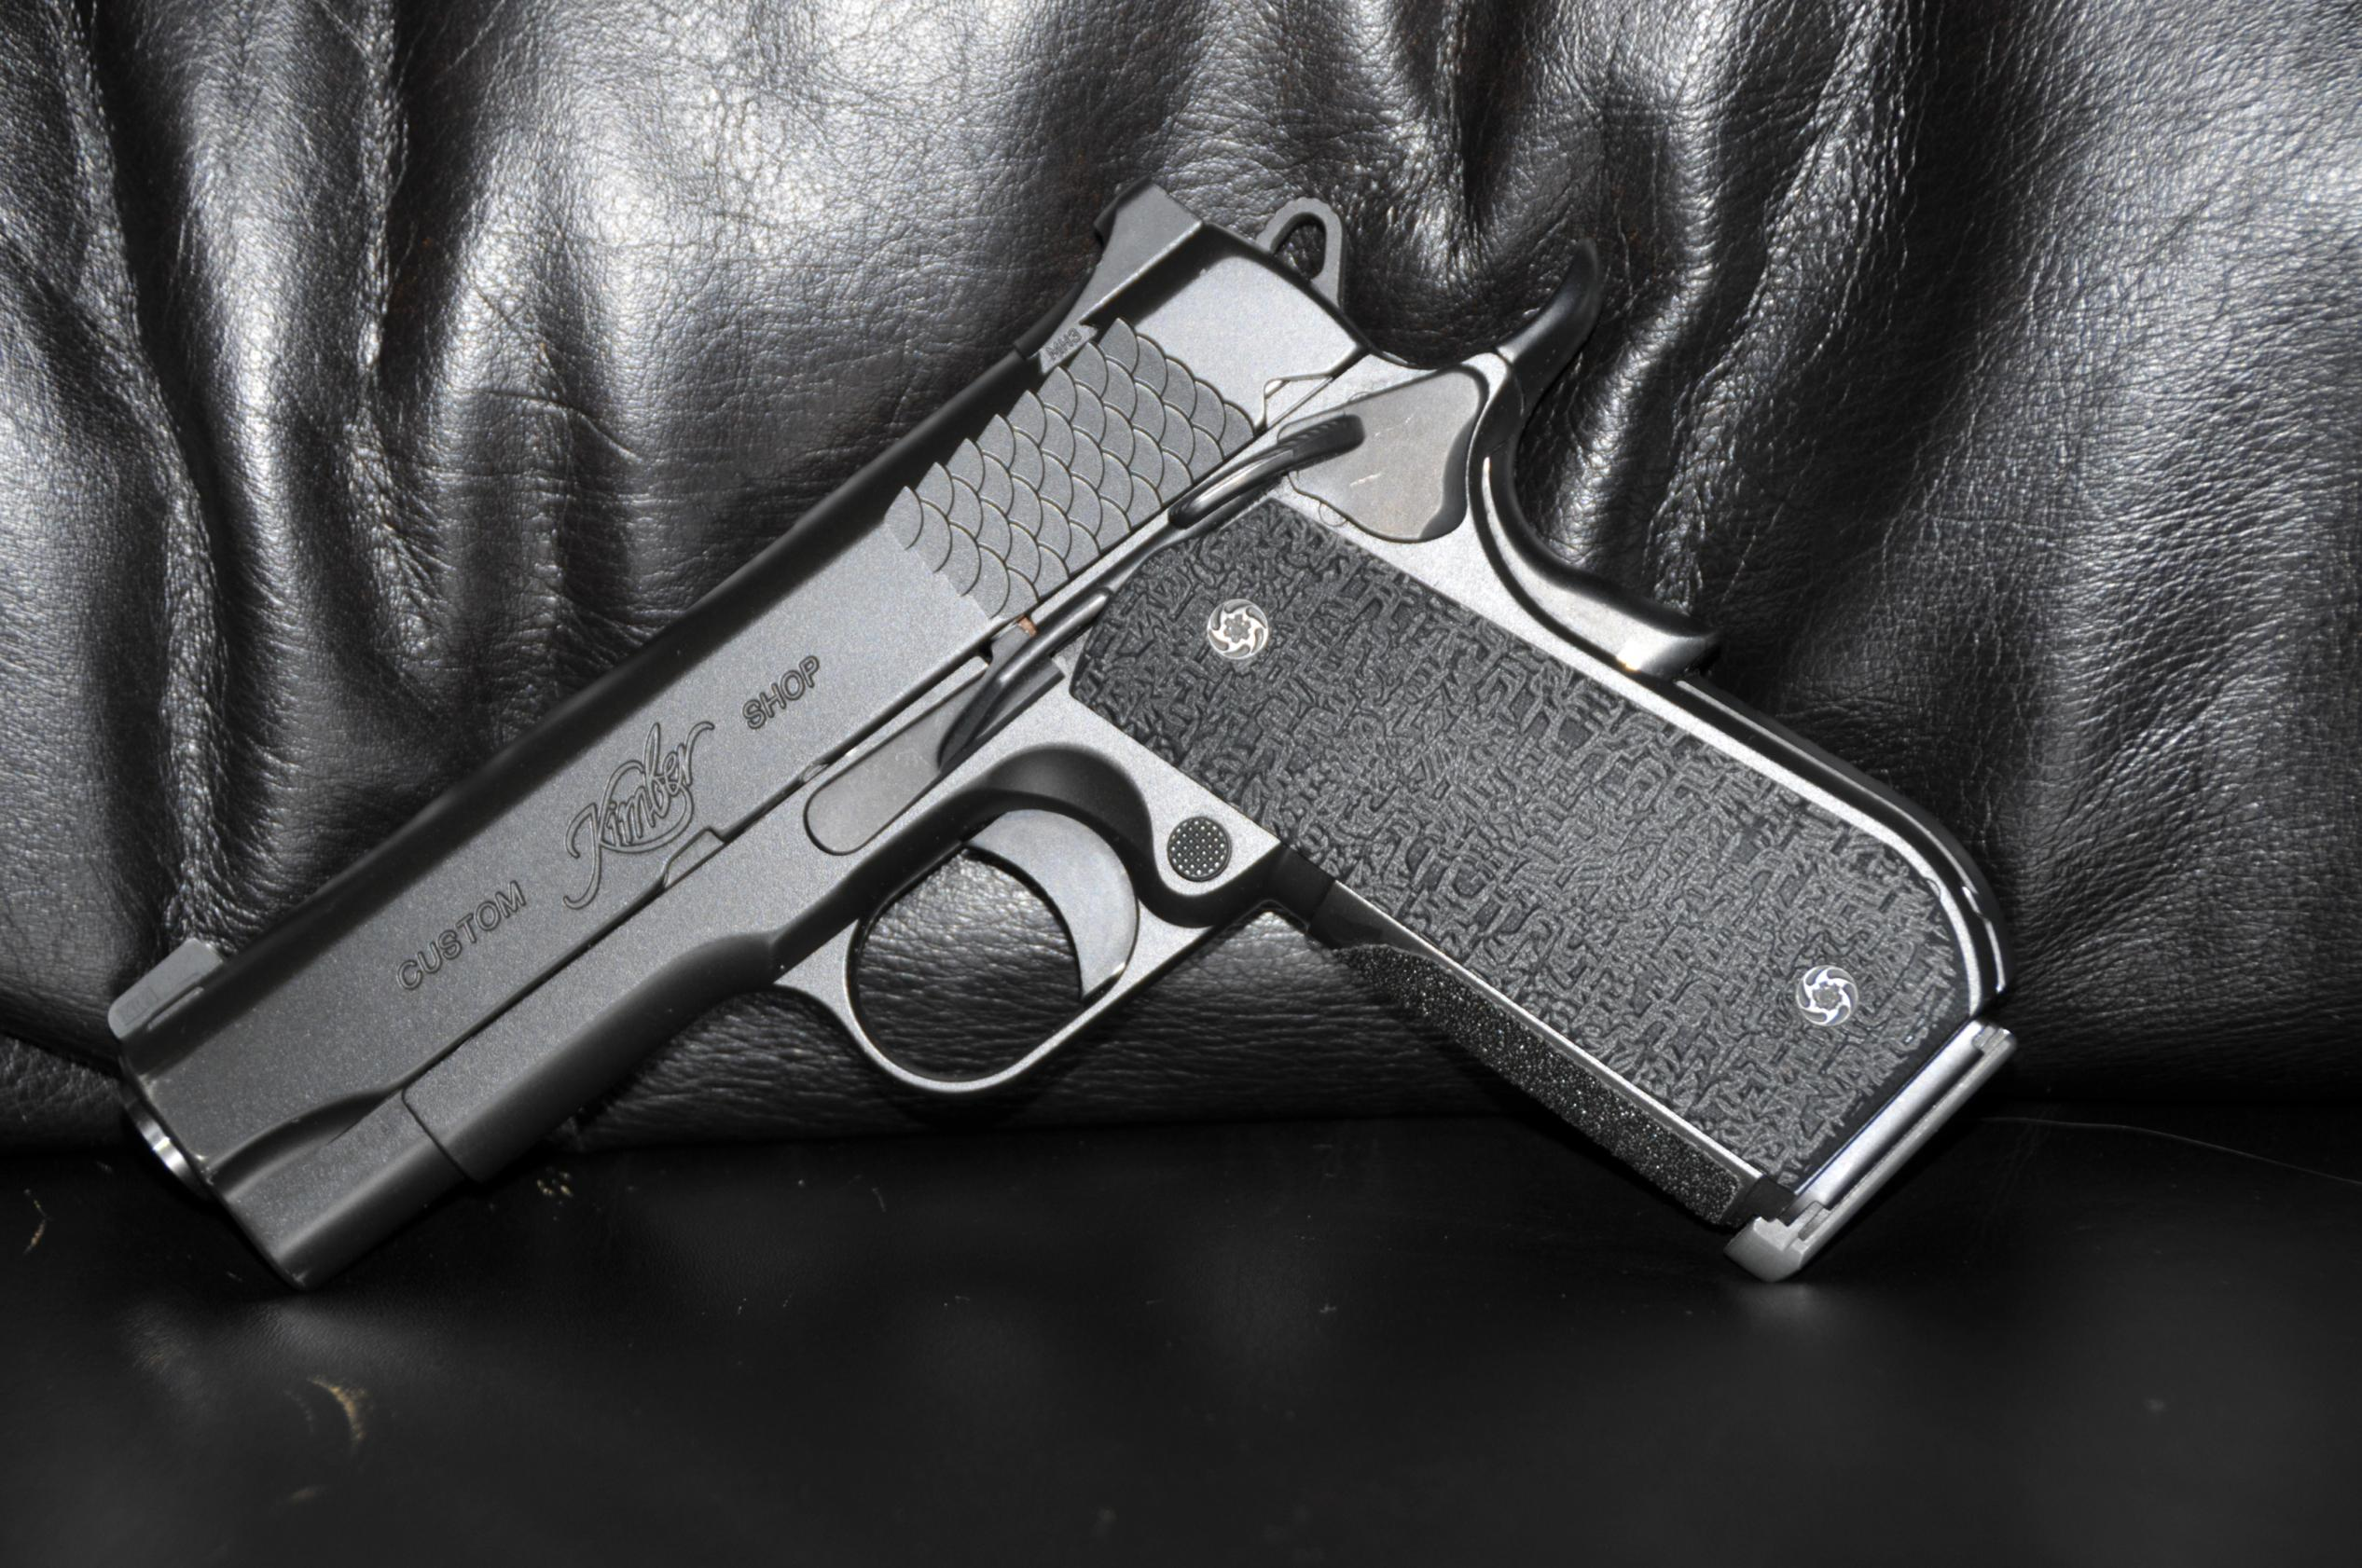 The Kimber Super Carry Pro HD: review, pics and points...Significant UPDATE in OP-firearms-20120206-119-3.jpg